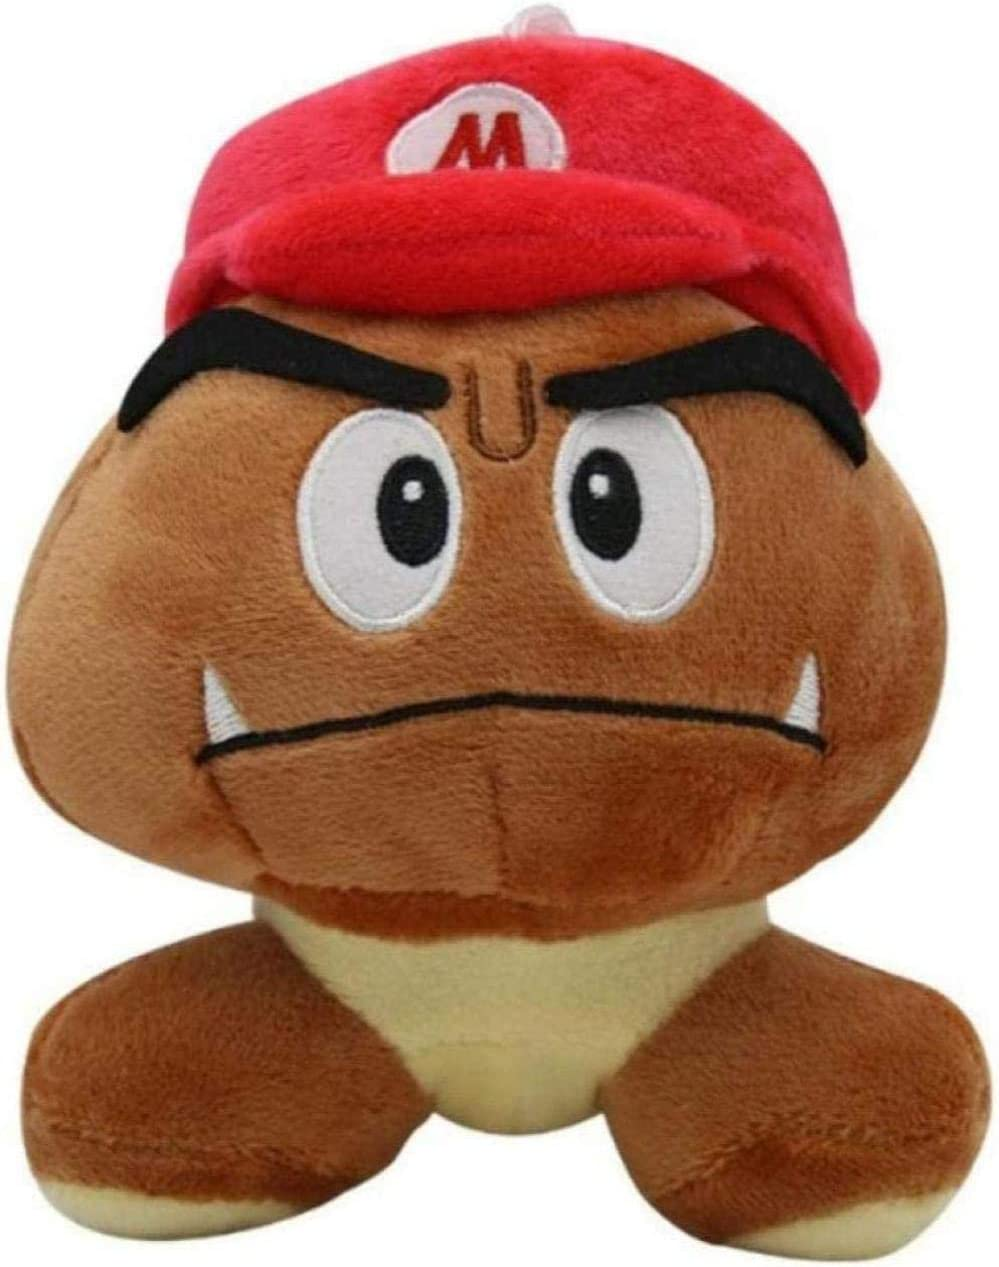 N D Stuffed Toy Super Mario Poisonous Mushroom Goomba Plush Doll